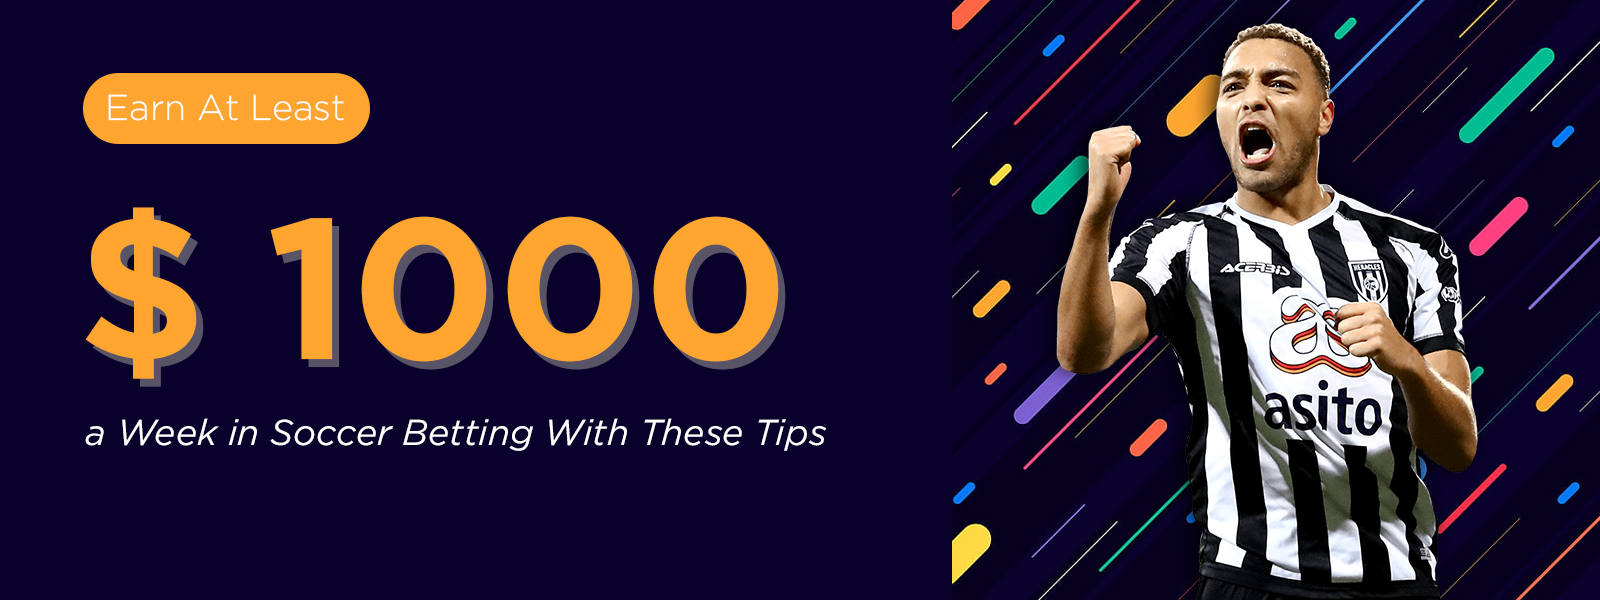 Earn At Least $ 1000 a Week in Soccer Betting With These Tips